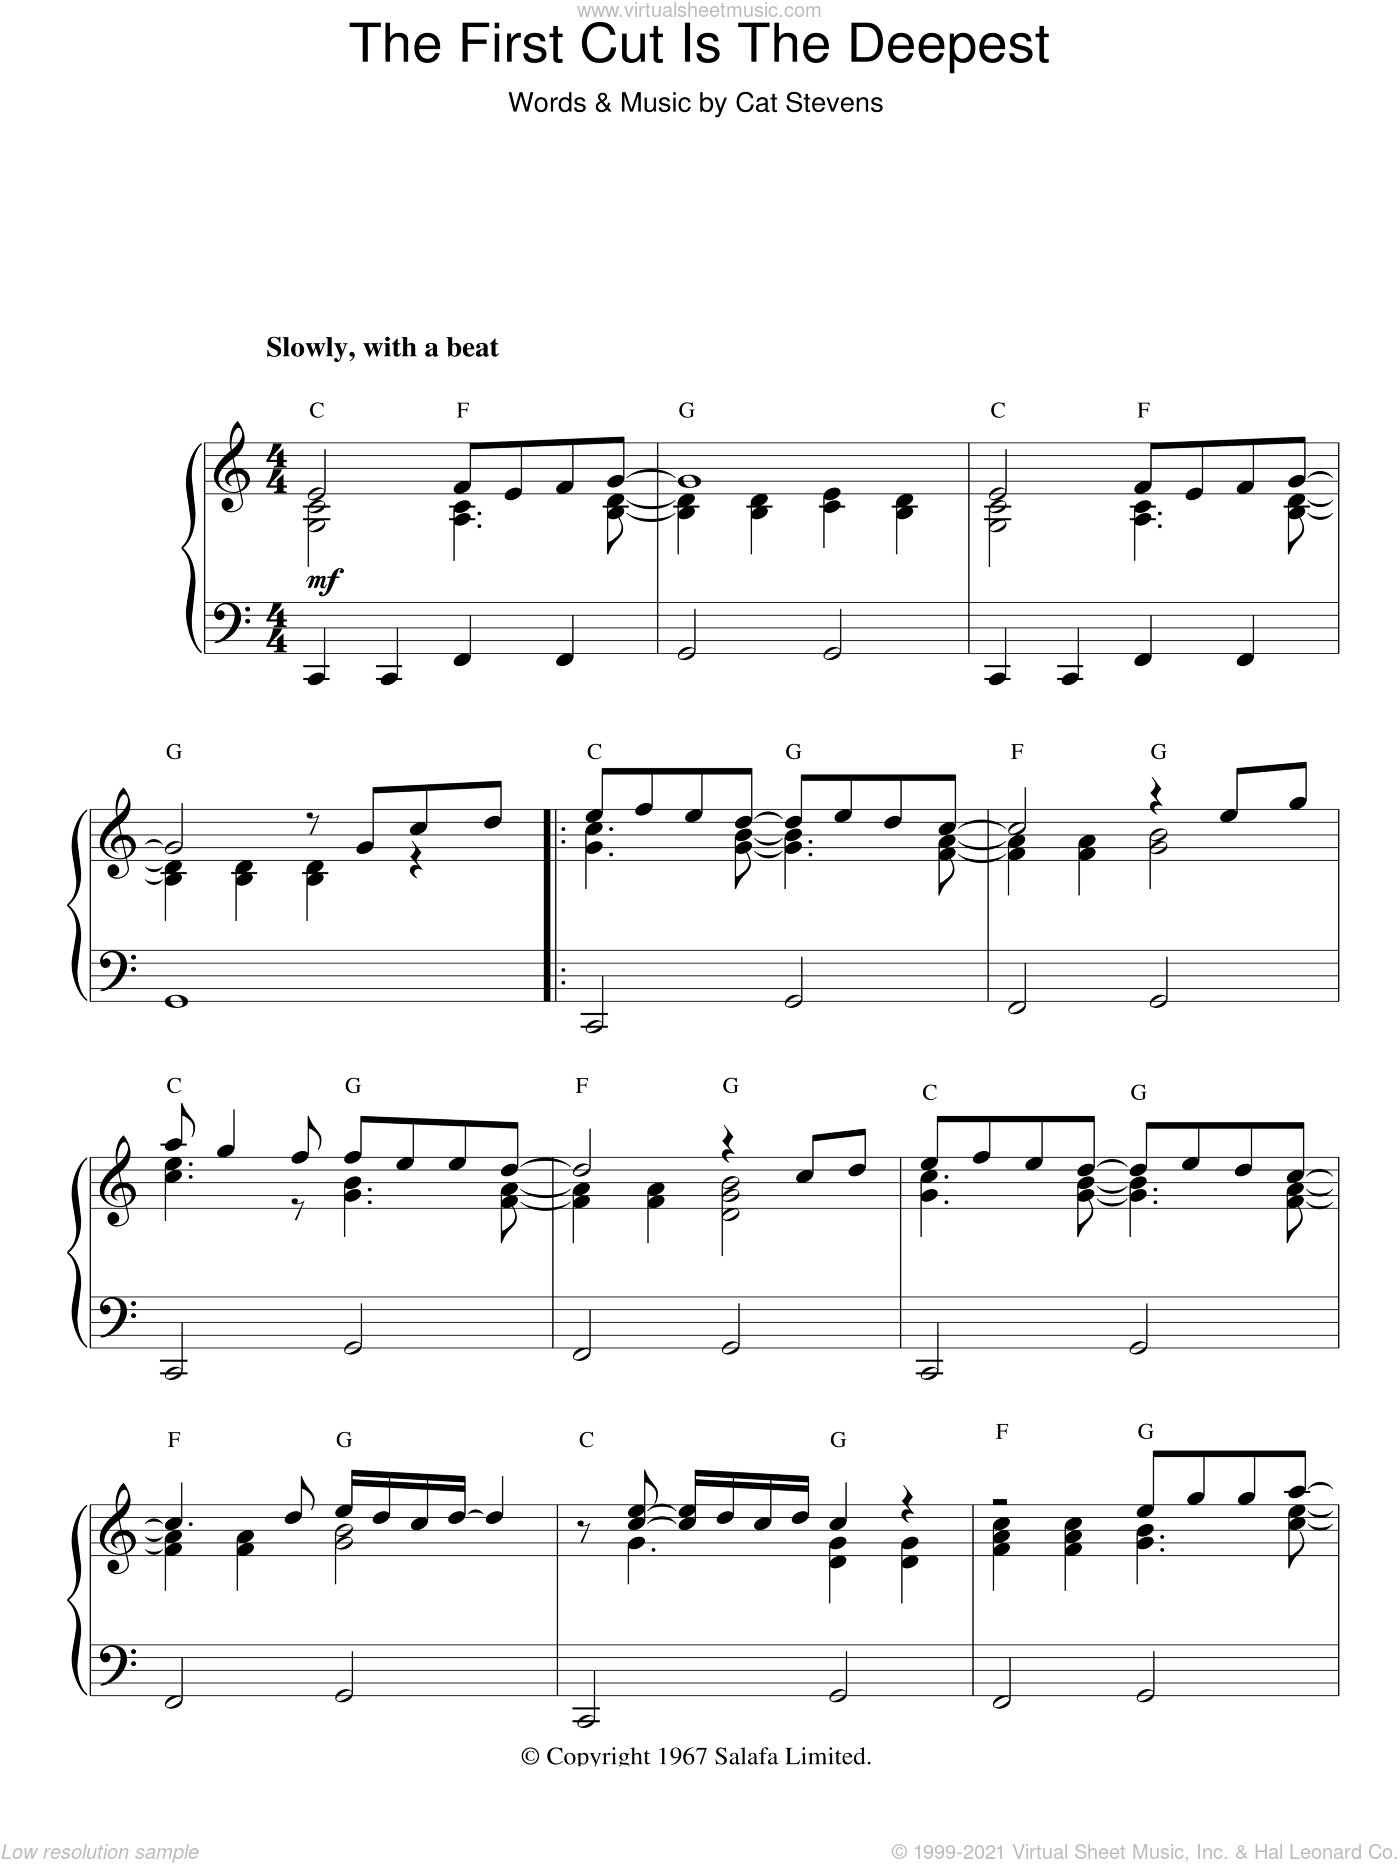 The First Cut Is The Deepest sheet music for piano solo by Cat Stevens